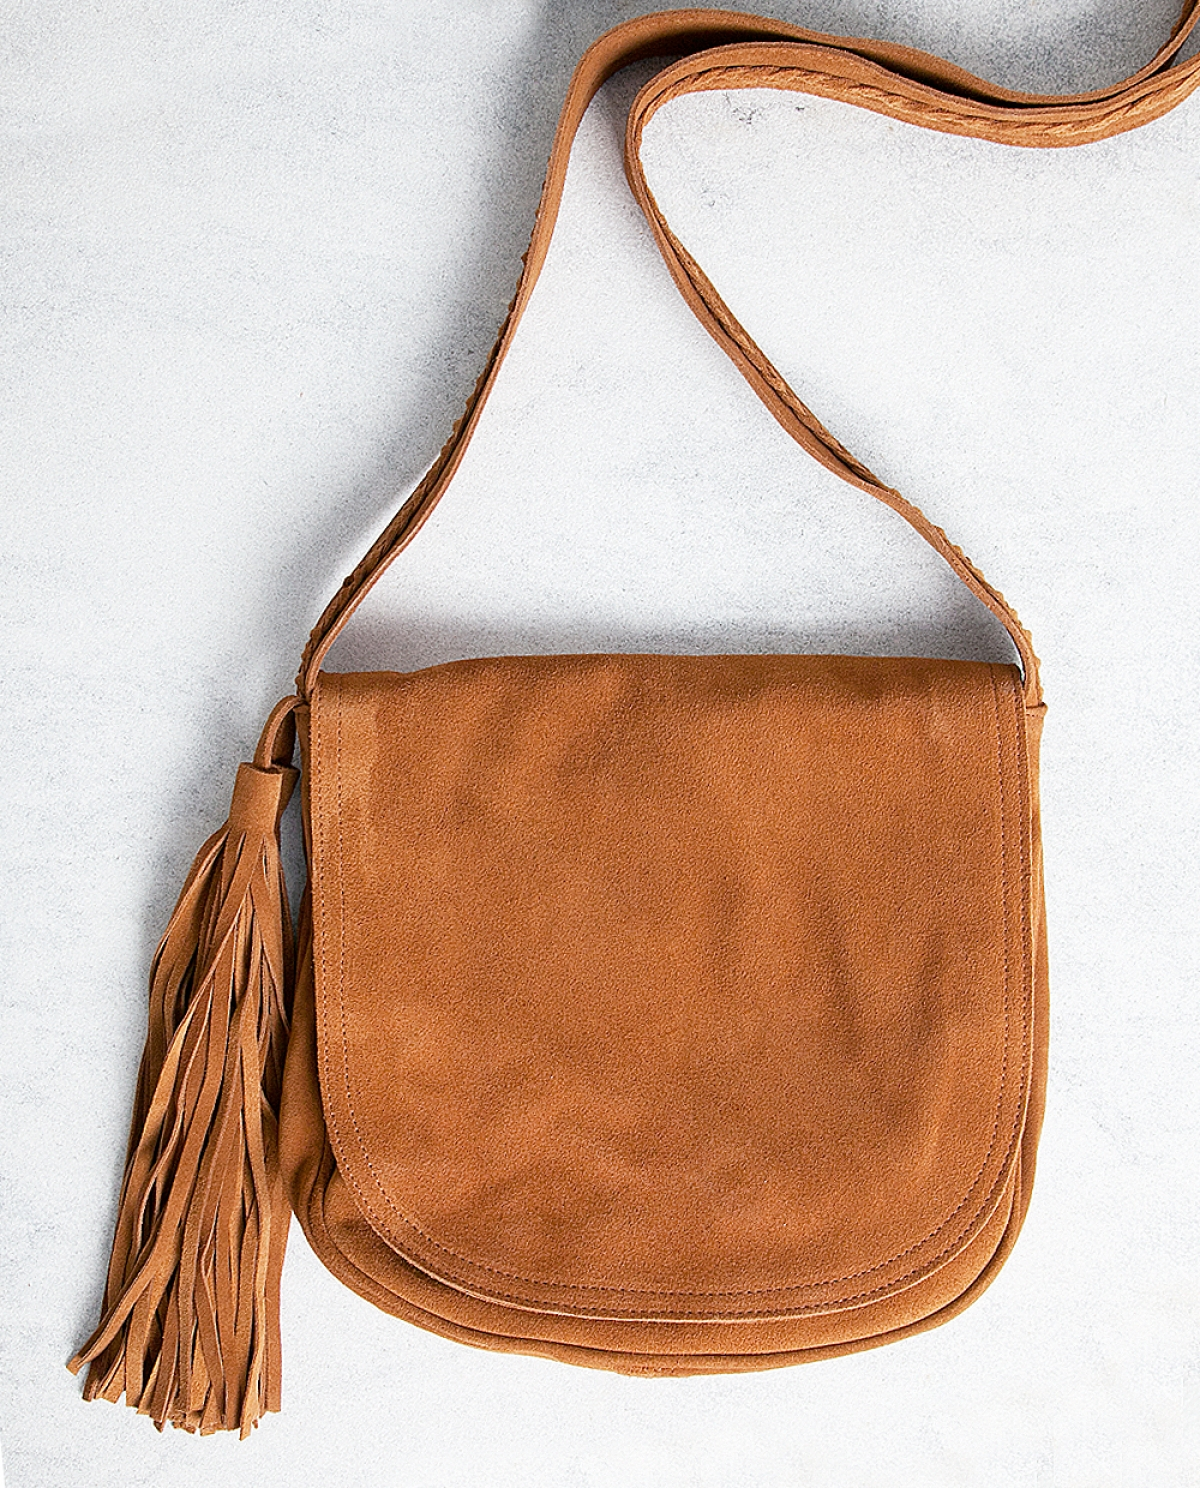 Caramel Suede Messenger Bag